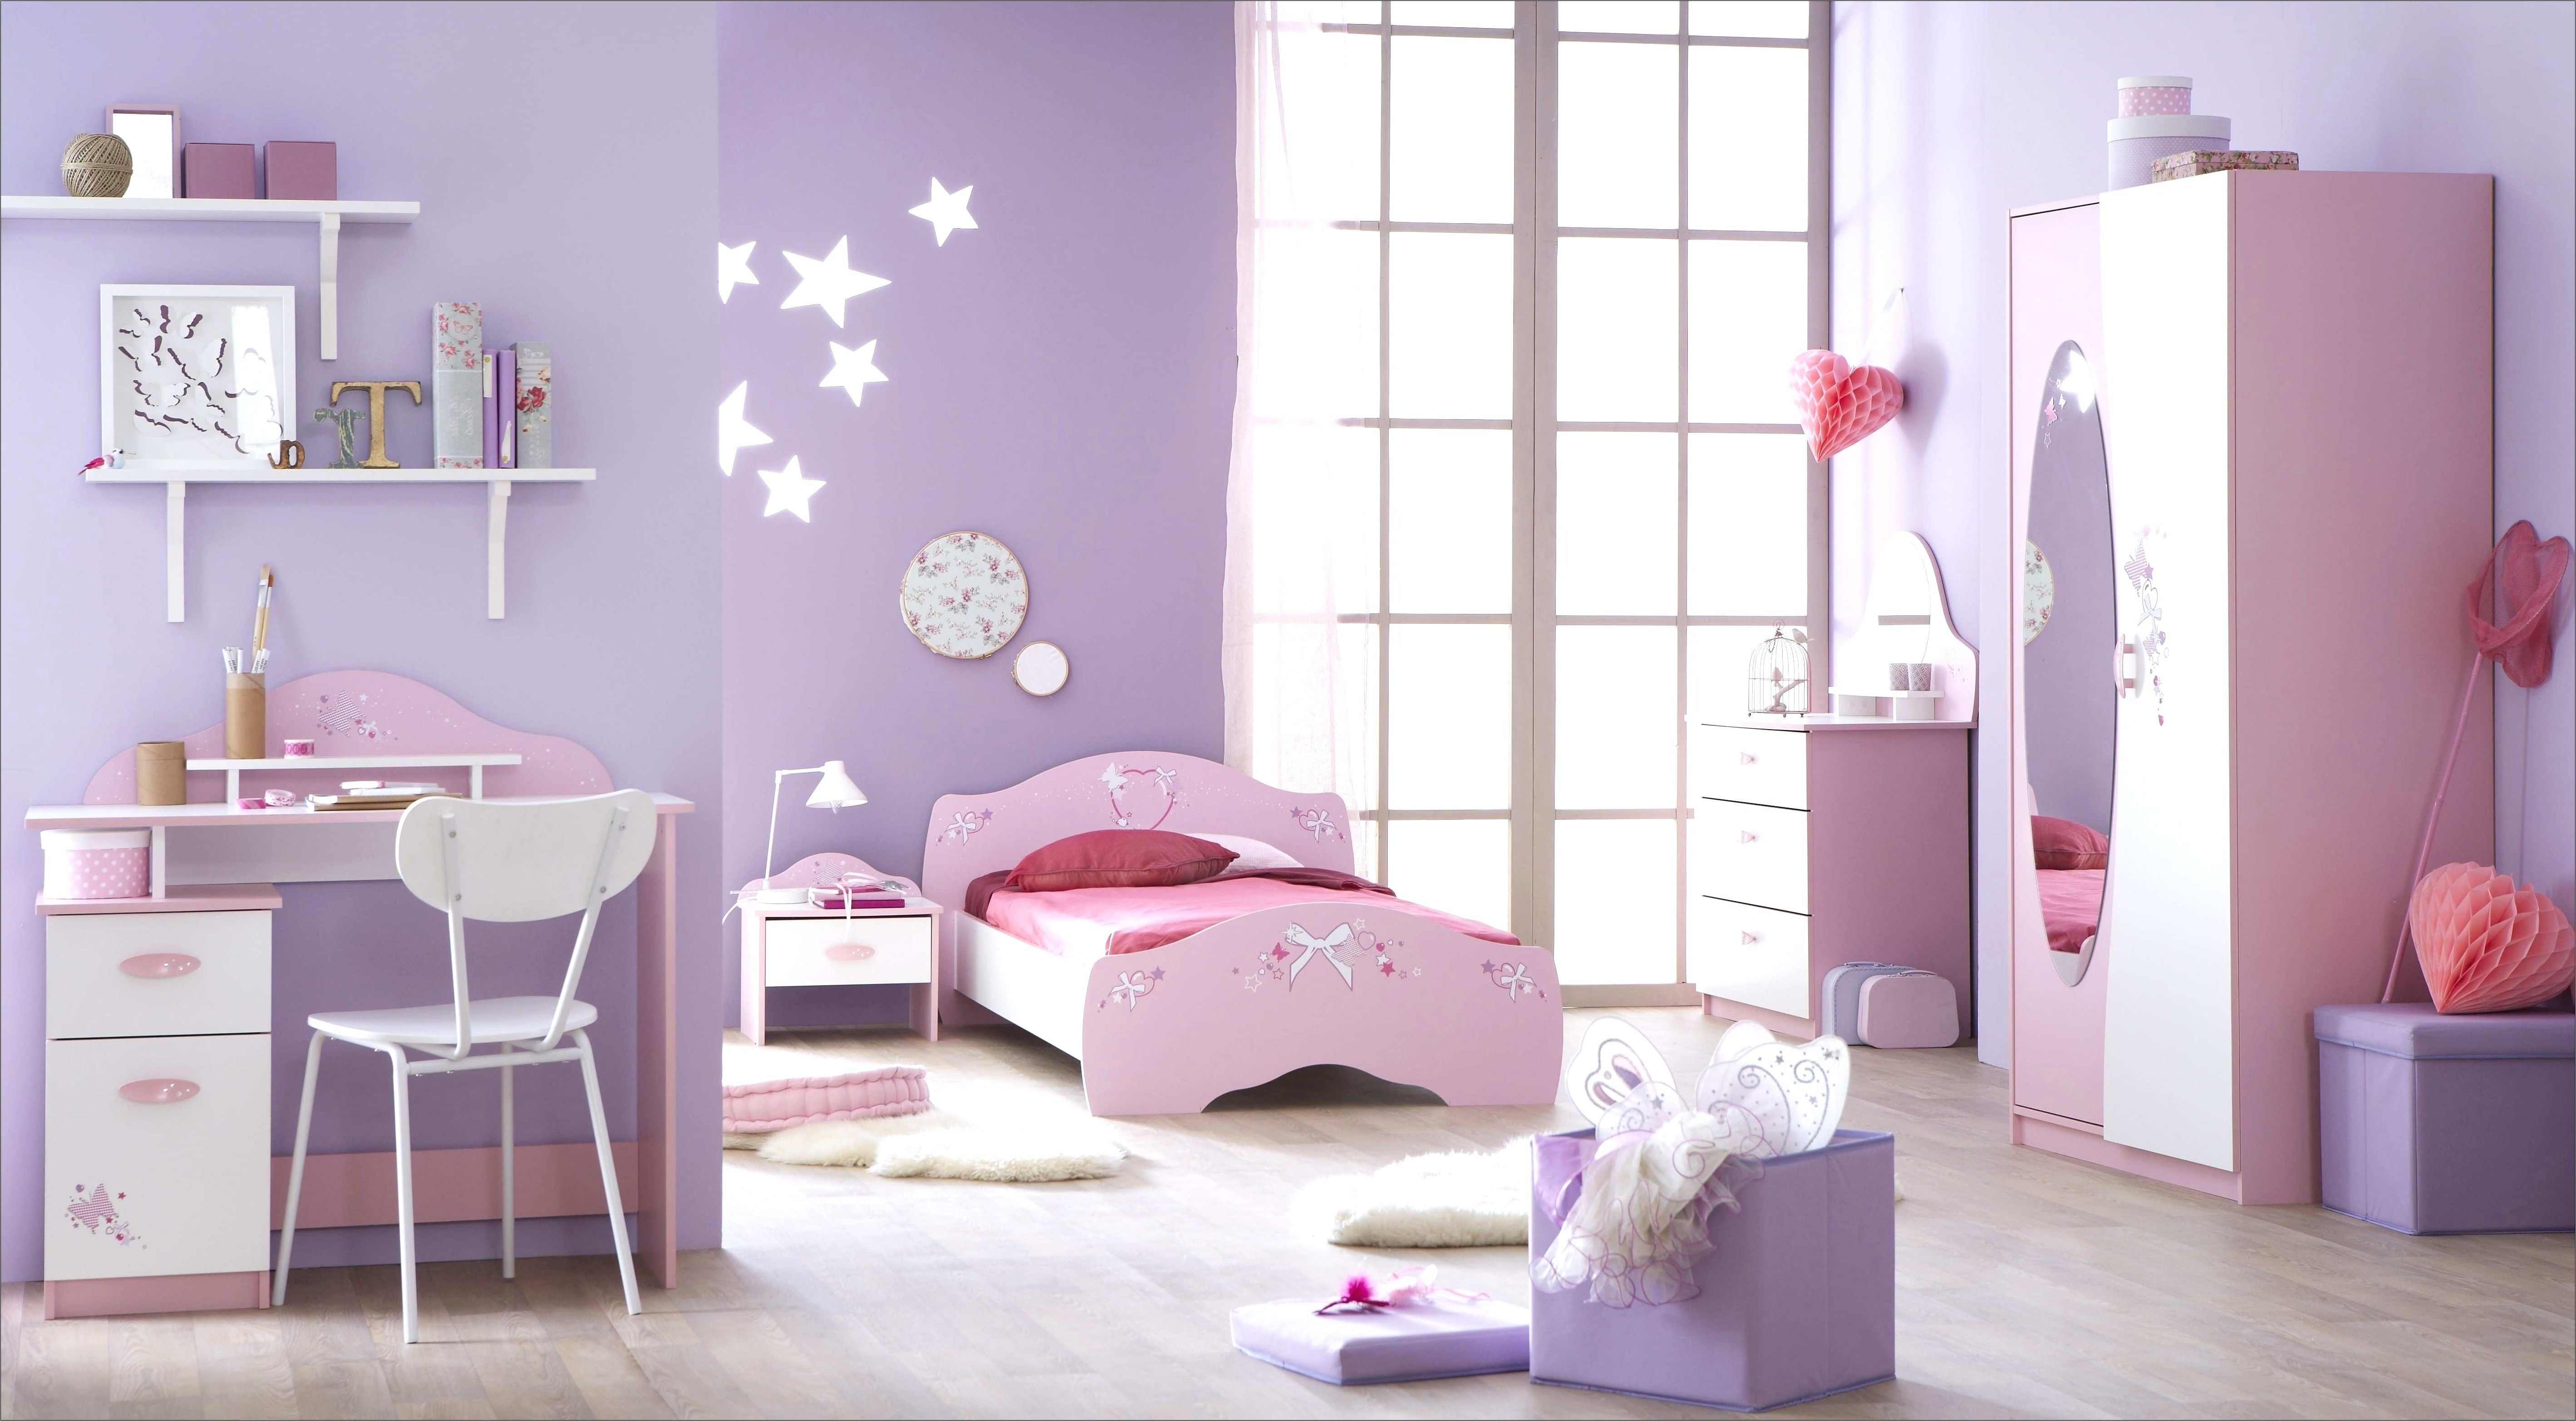 Idee Deco Chambre Fille 17 Ans  Toddler bed, Home decor, Decor